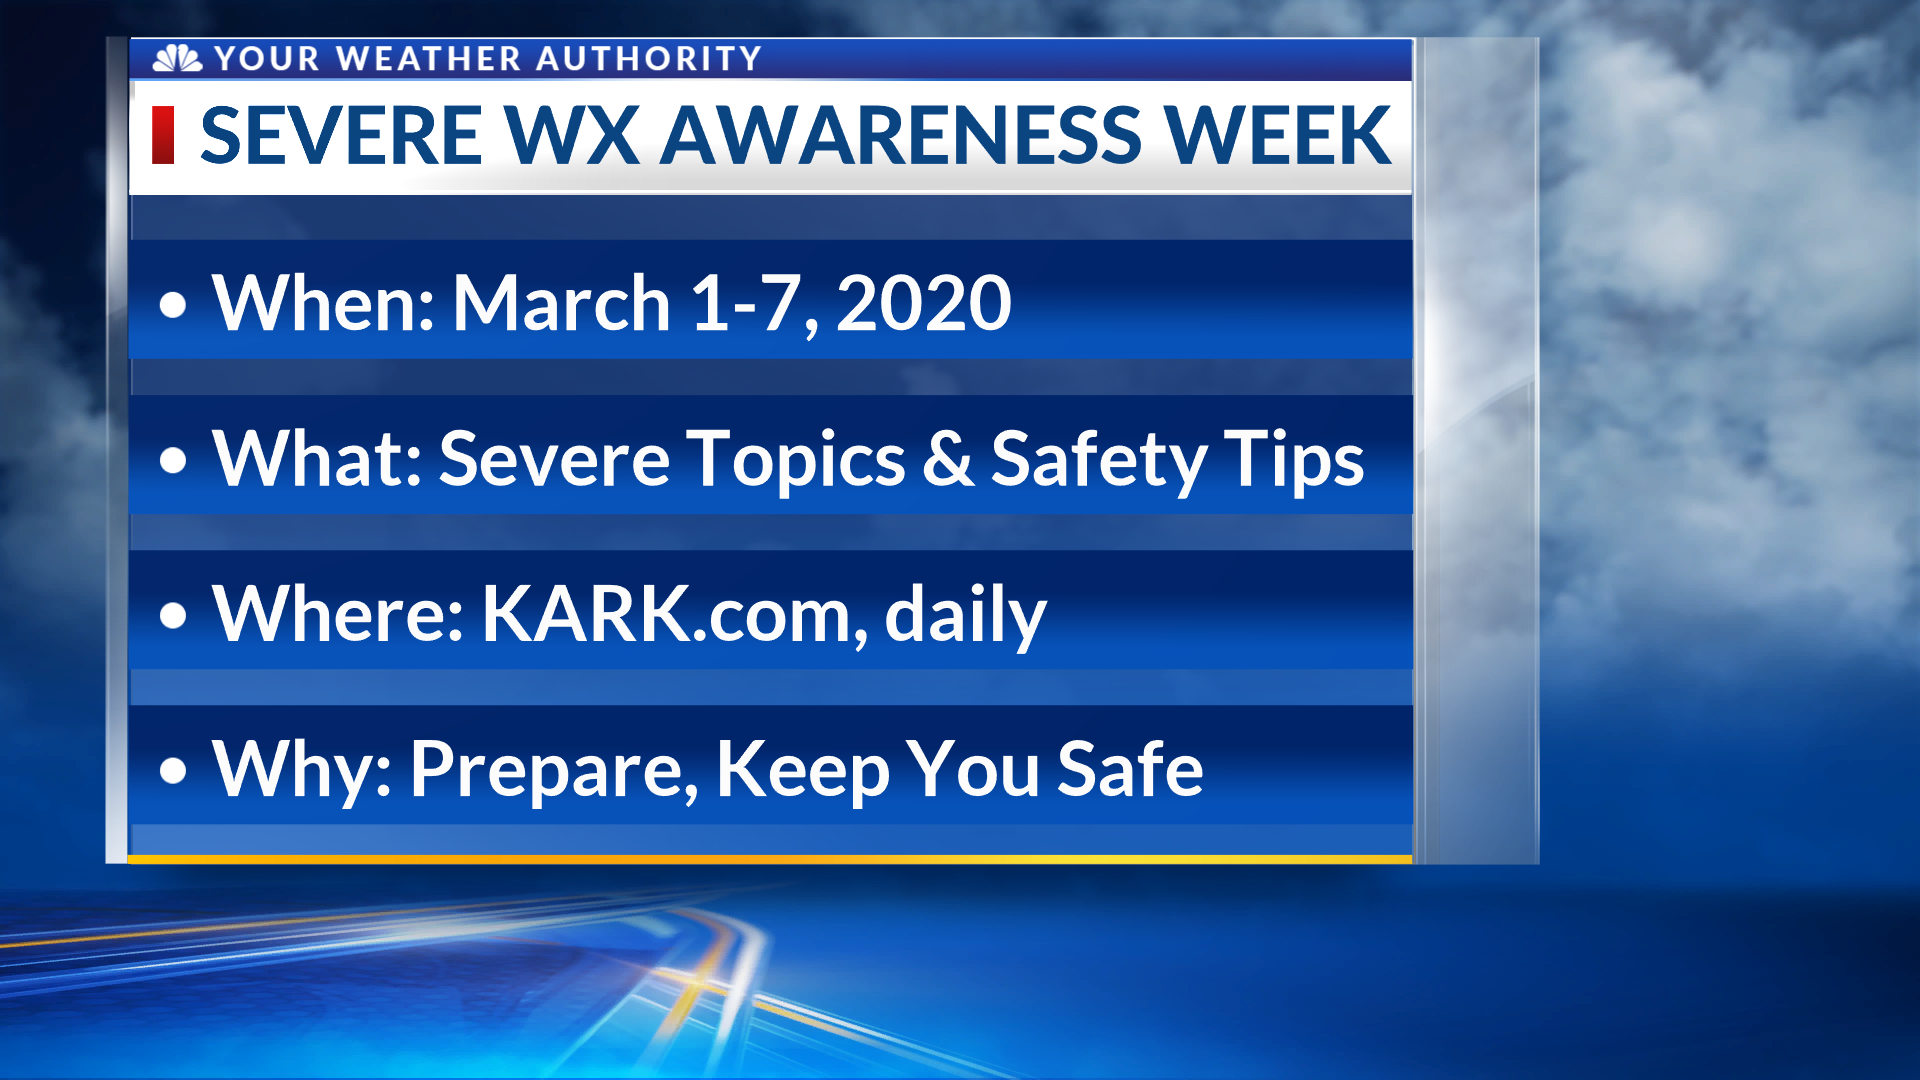 Severe Weather Awareness Week: March 1-7, 2020